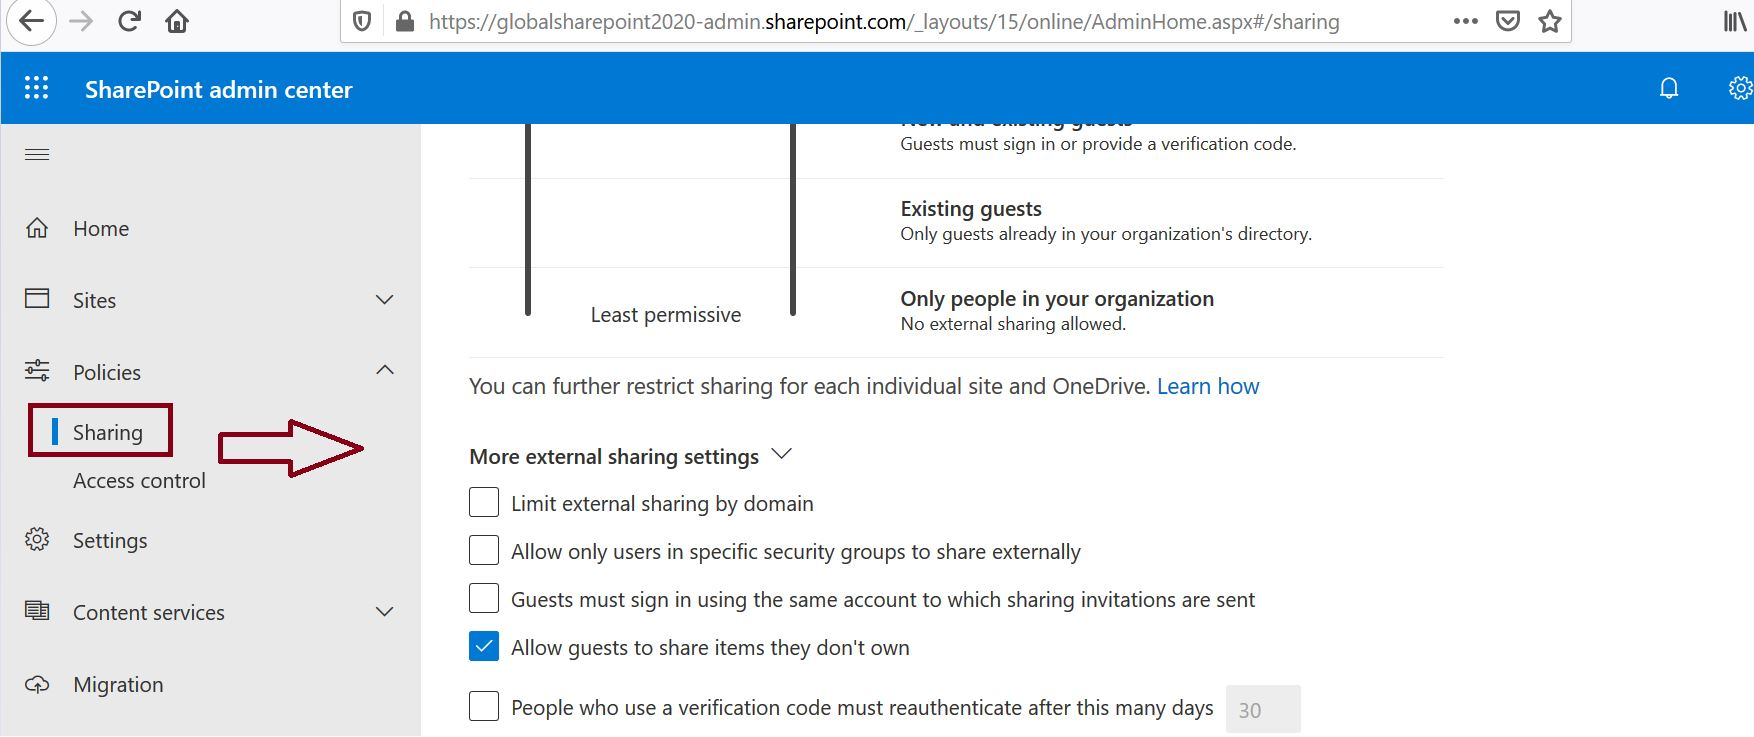 More external sharing settings in Policy sharing settings